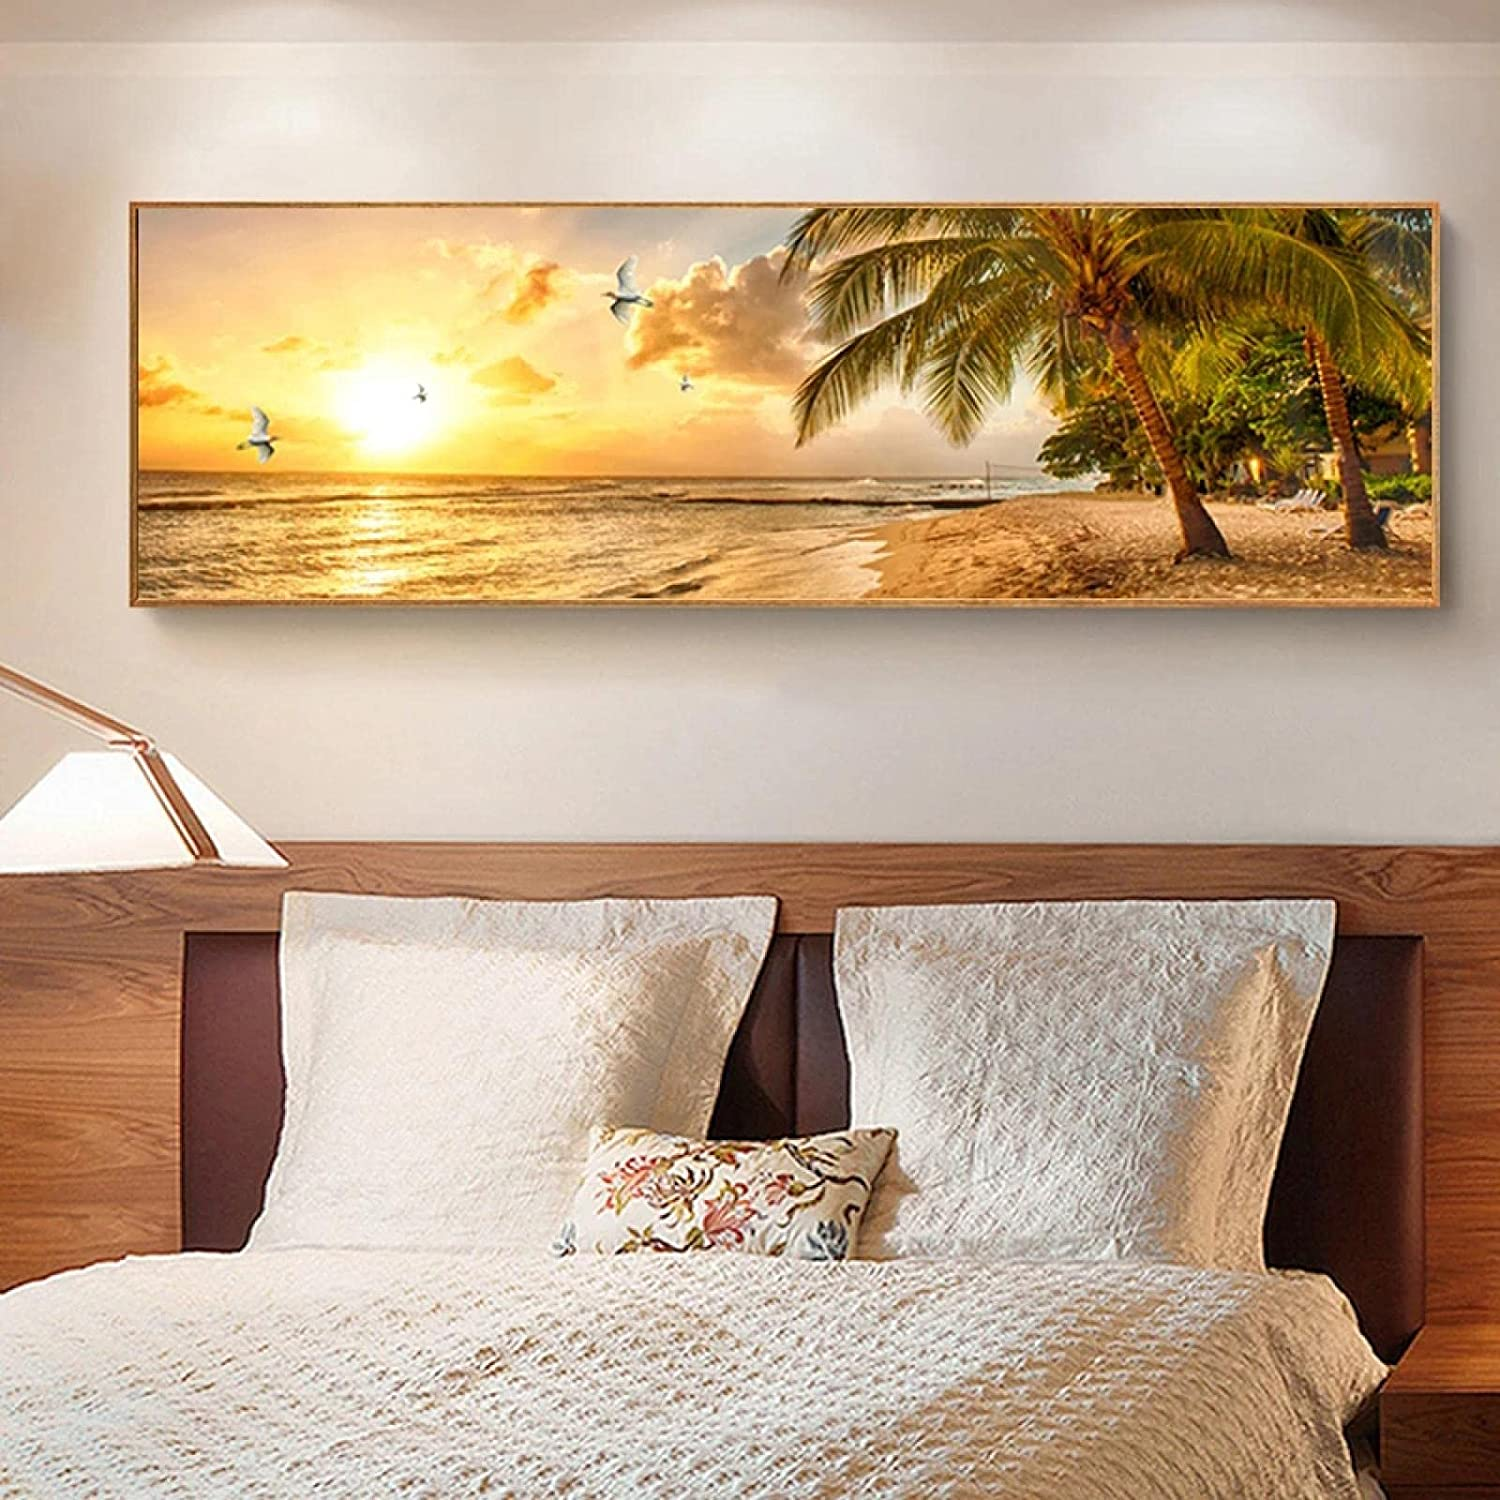 Sunsets Natural Max 44% OFF Sea Max 77% OFF Beach Landscape Prints Canvas Pa and Posters